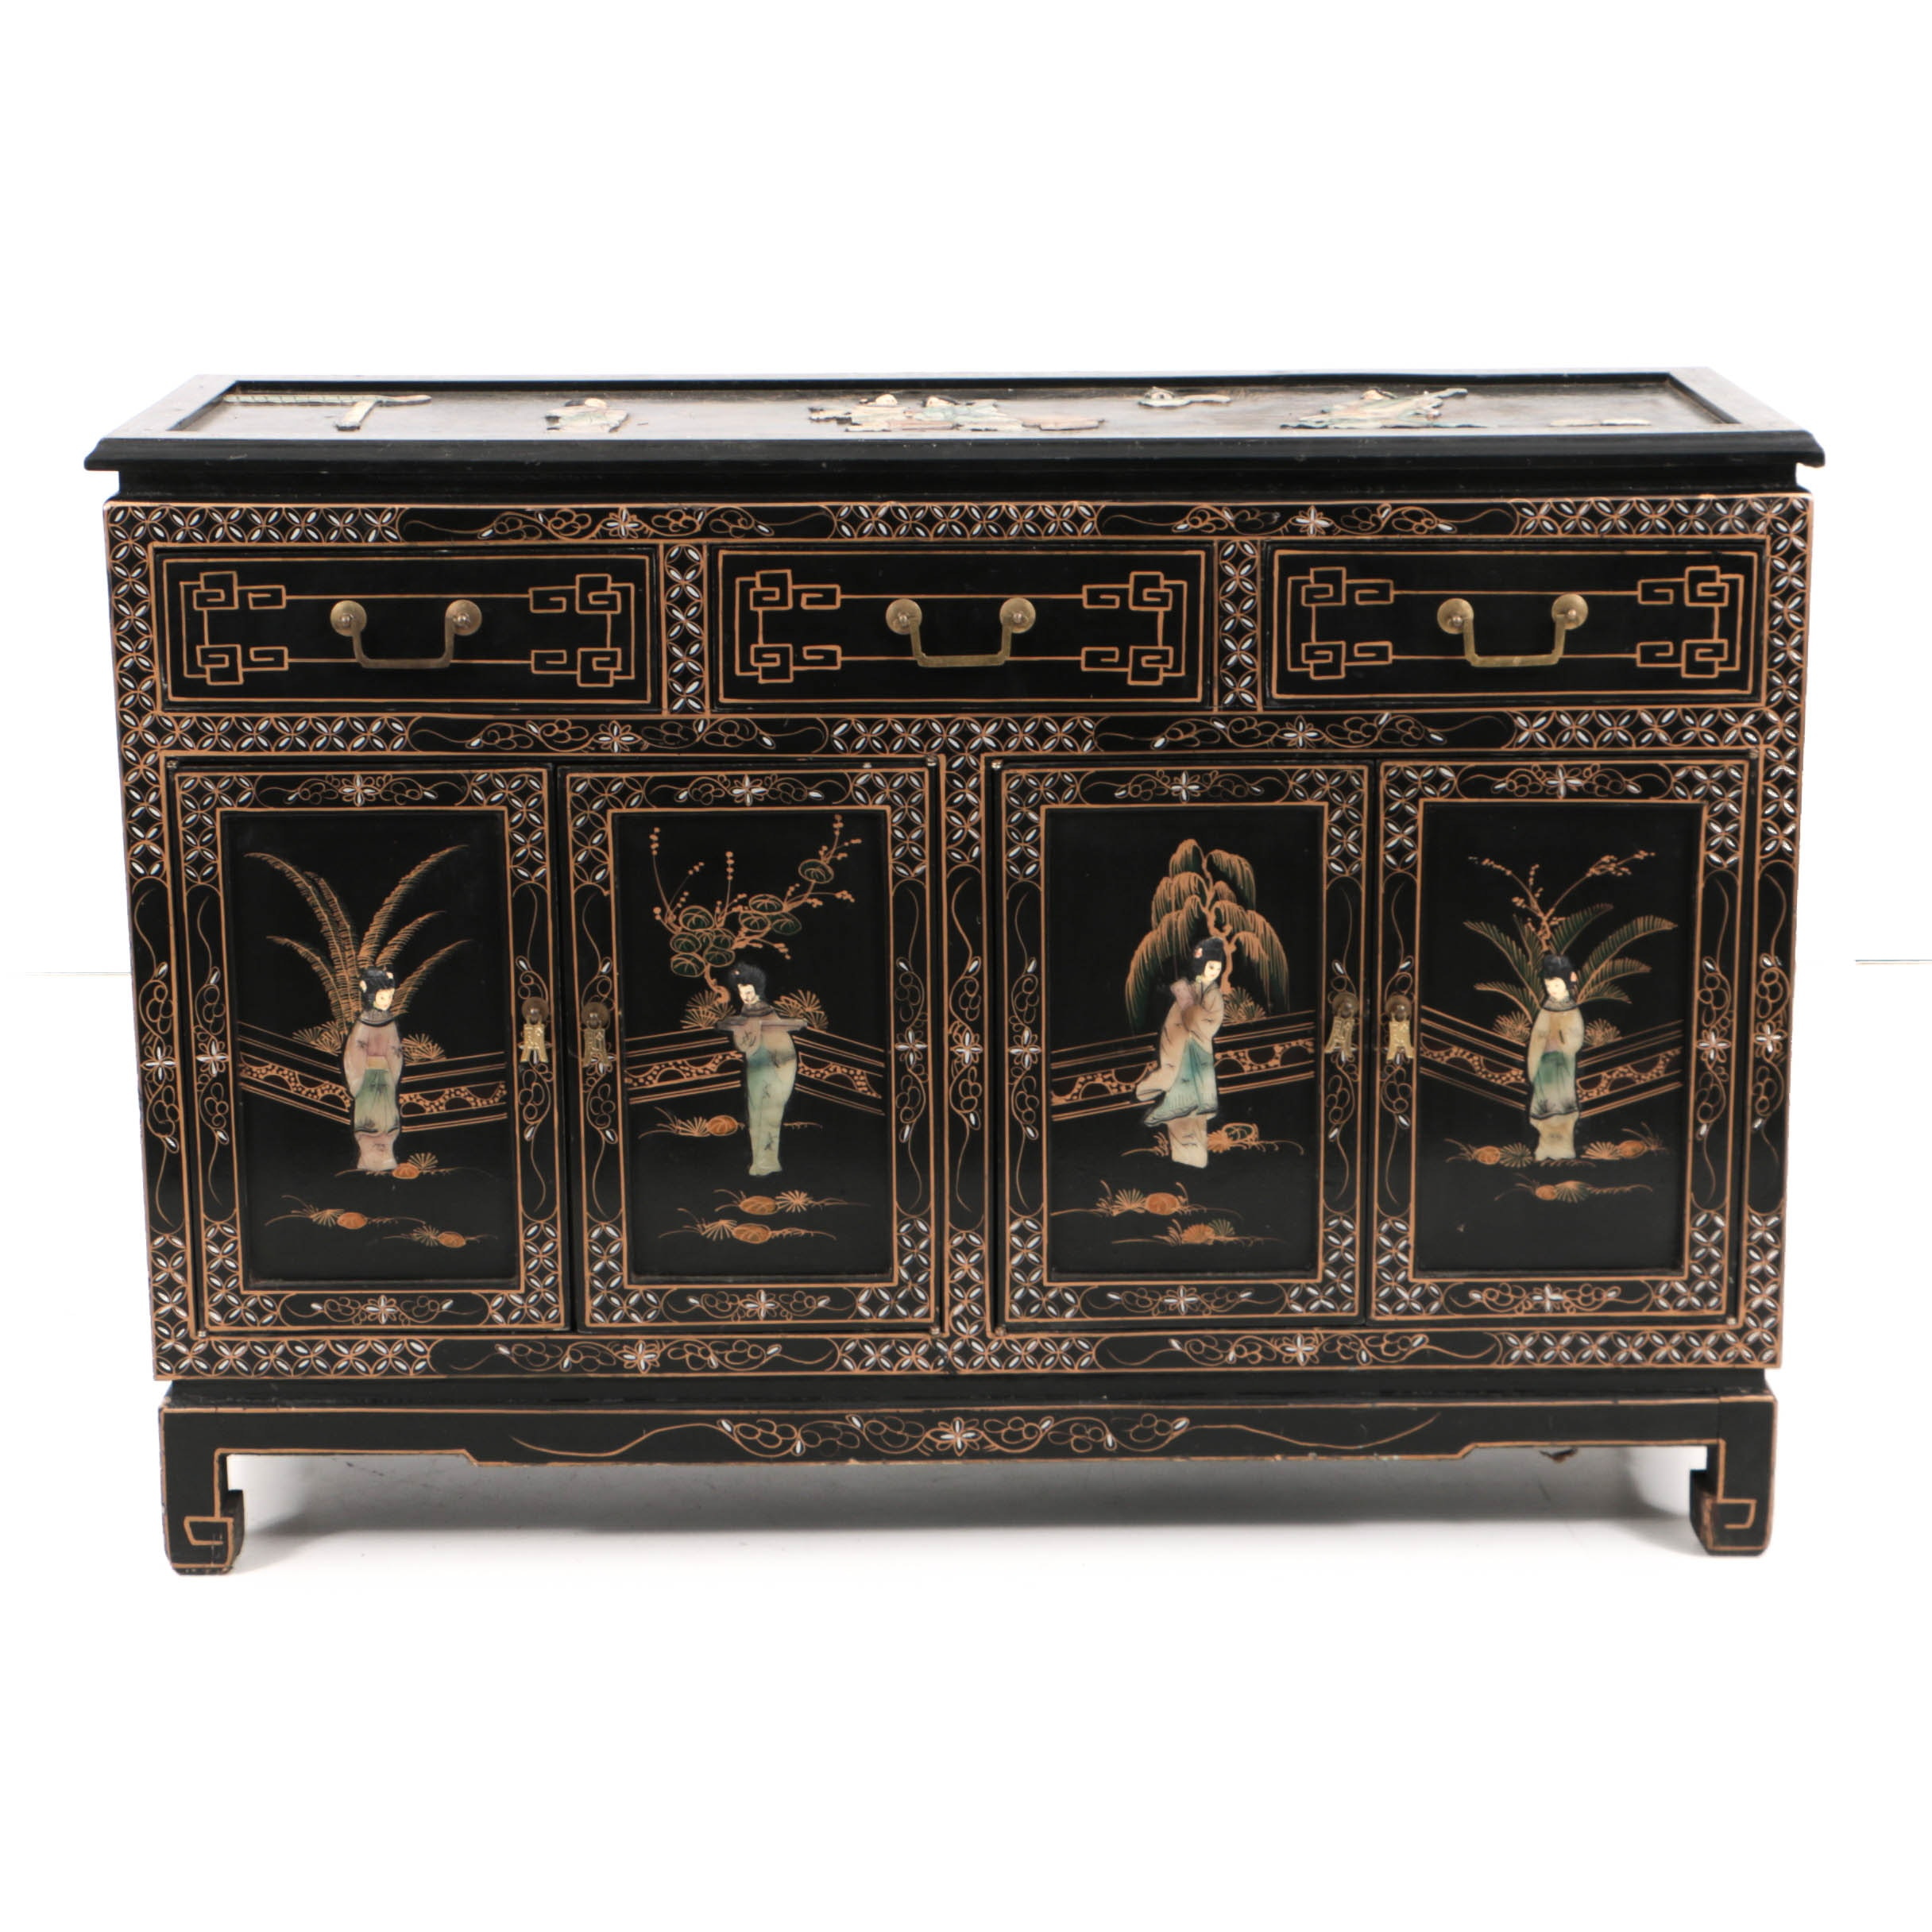 Vintage Lacquered and Hand-Painted Chinoiserie Cabinet with Hard Stone Appliqués